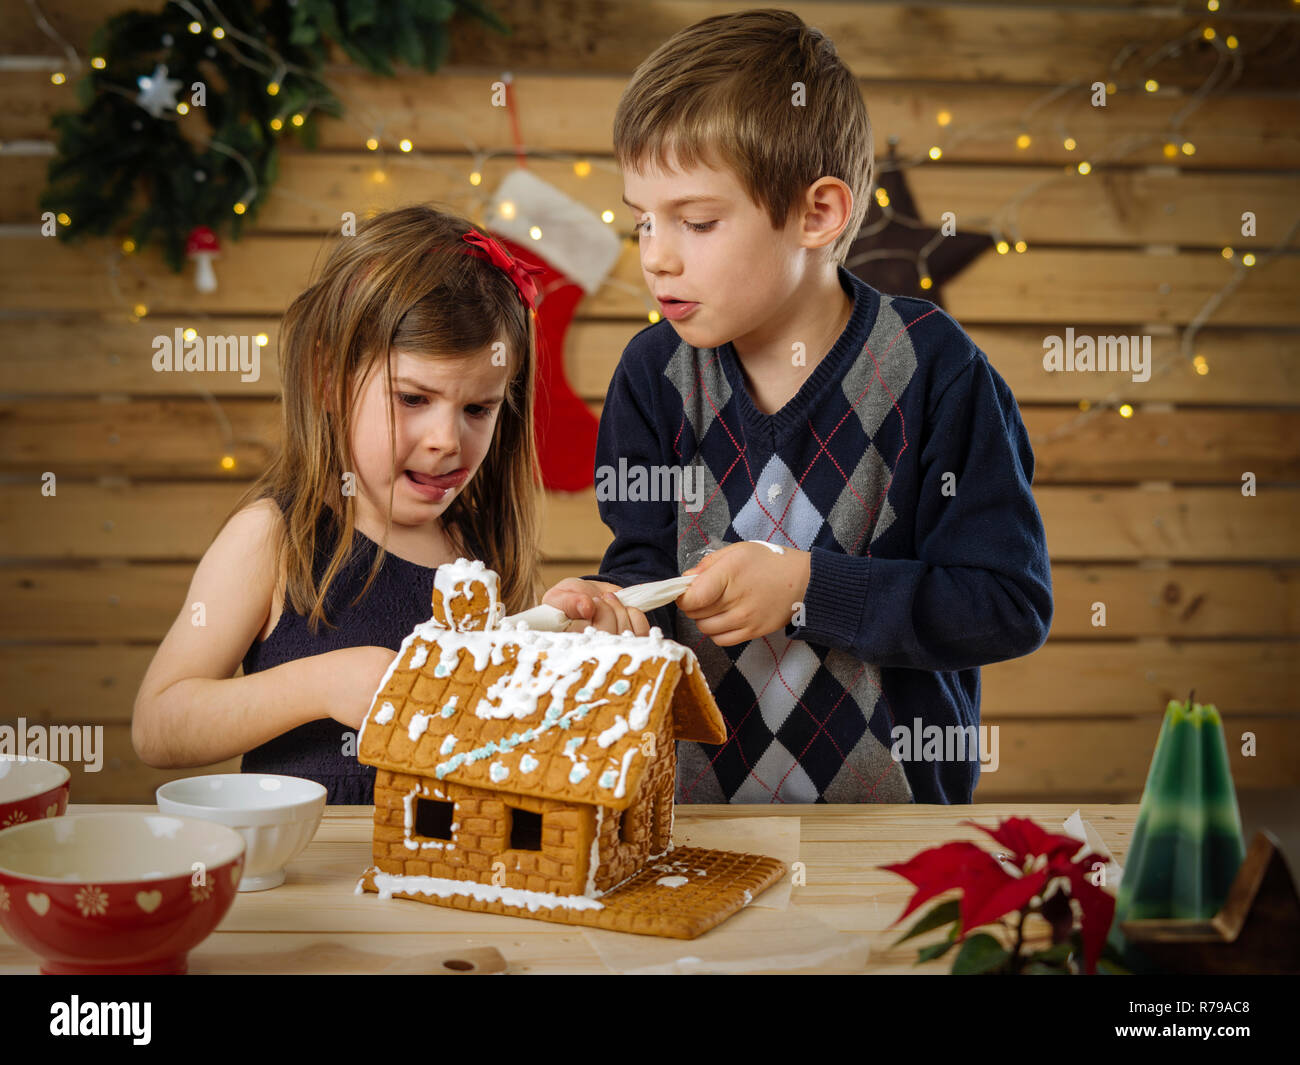 Photo of a young brother and sister decorating a gingerbread house at home just before Christmas. - Stock Image